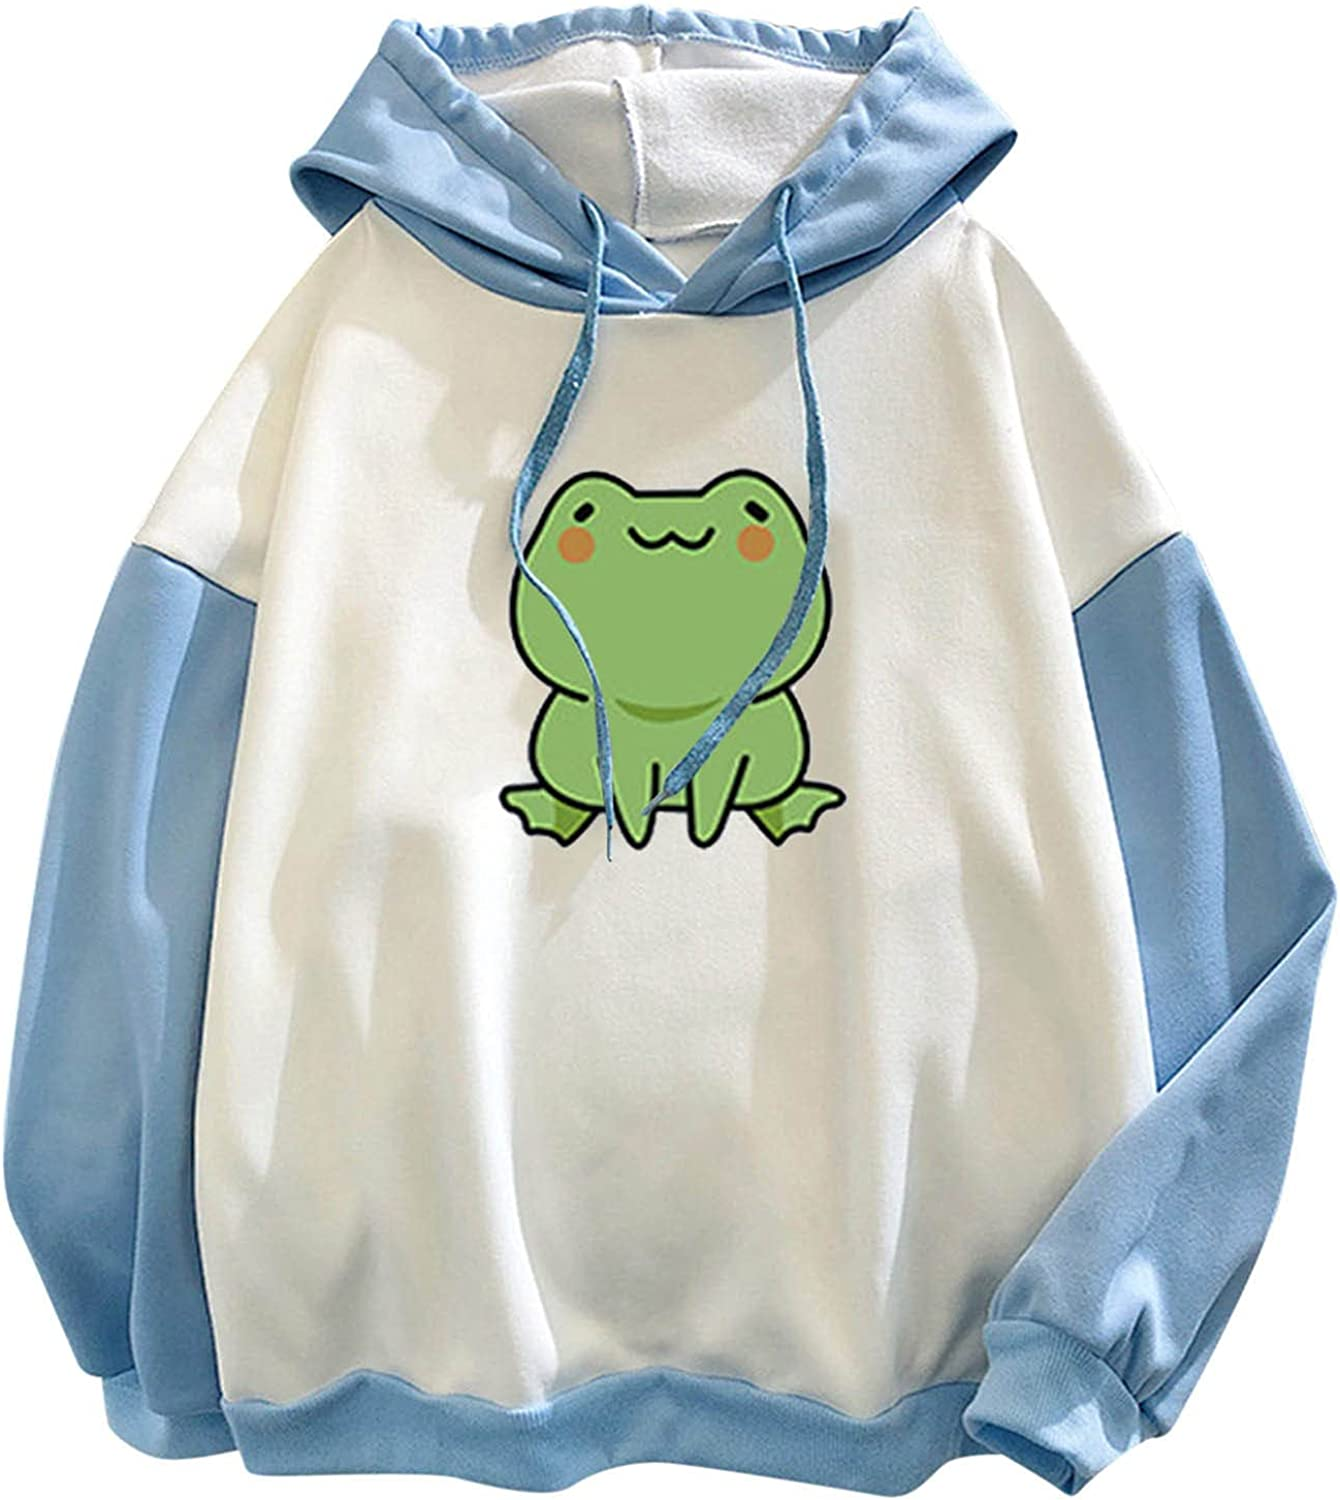 Kanzd Cute Frog Hoodie for Teen Girls Woemn Casual Loose Fit Frog Print Sweatshirts Pullover Patchwork Long Sleeve Tops